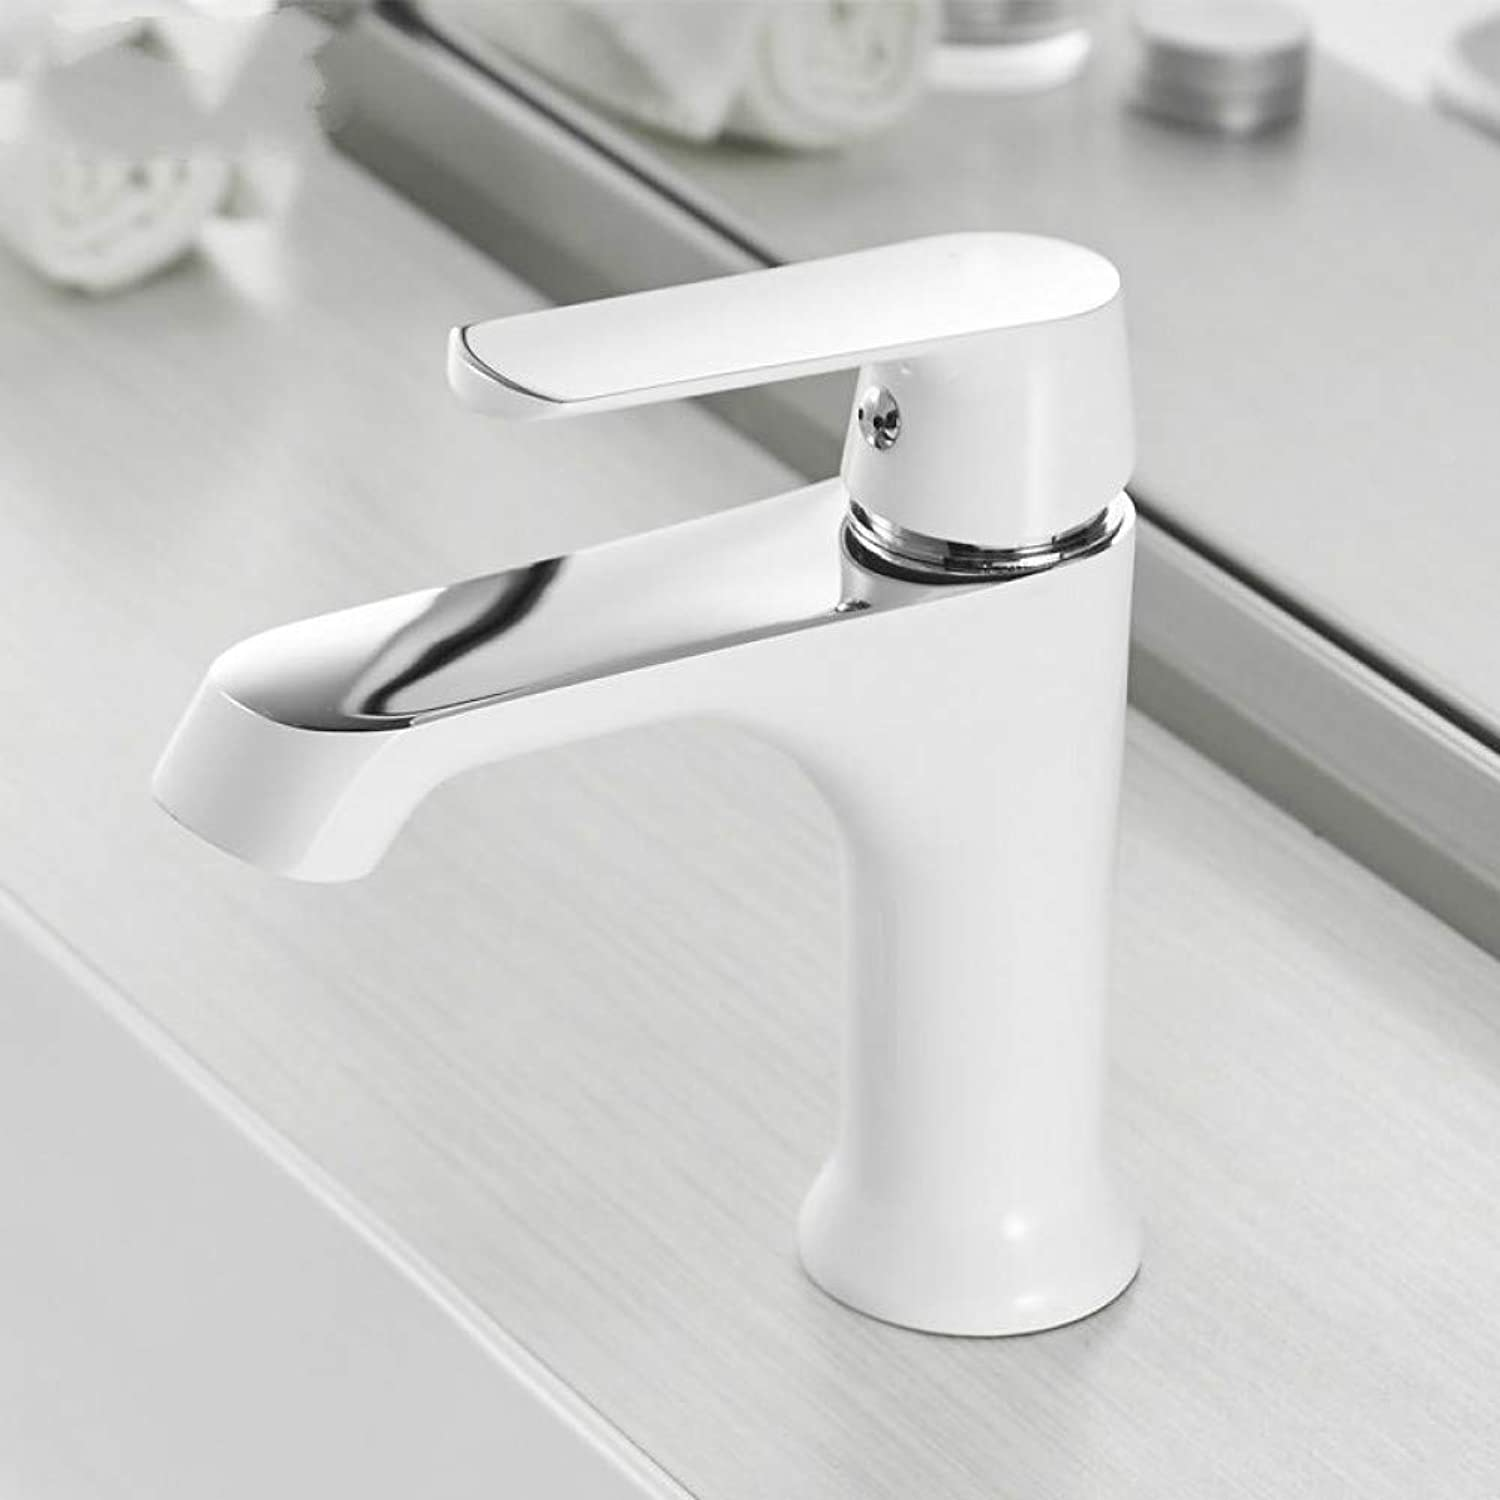 ZHFJGKR&ZL Basin Faucet Cold And Hot Water Taps Bronze White Fashion Single Hole Bathroom Mixer Faucet.A